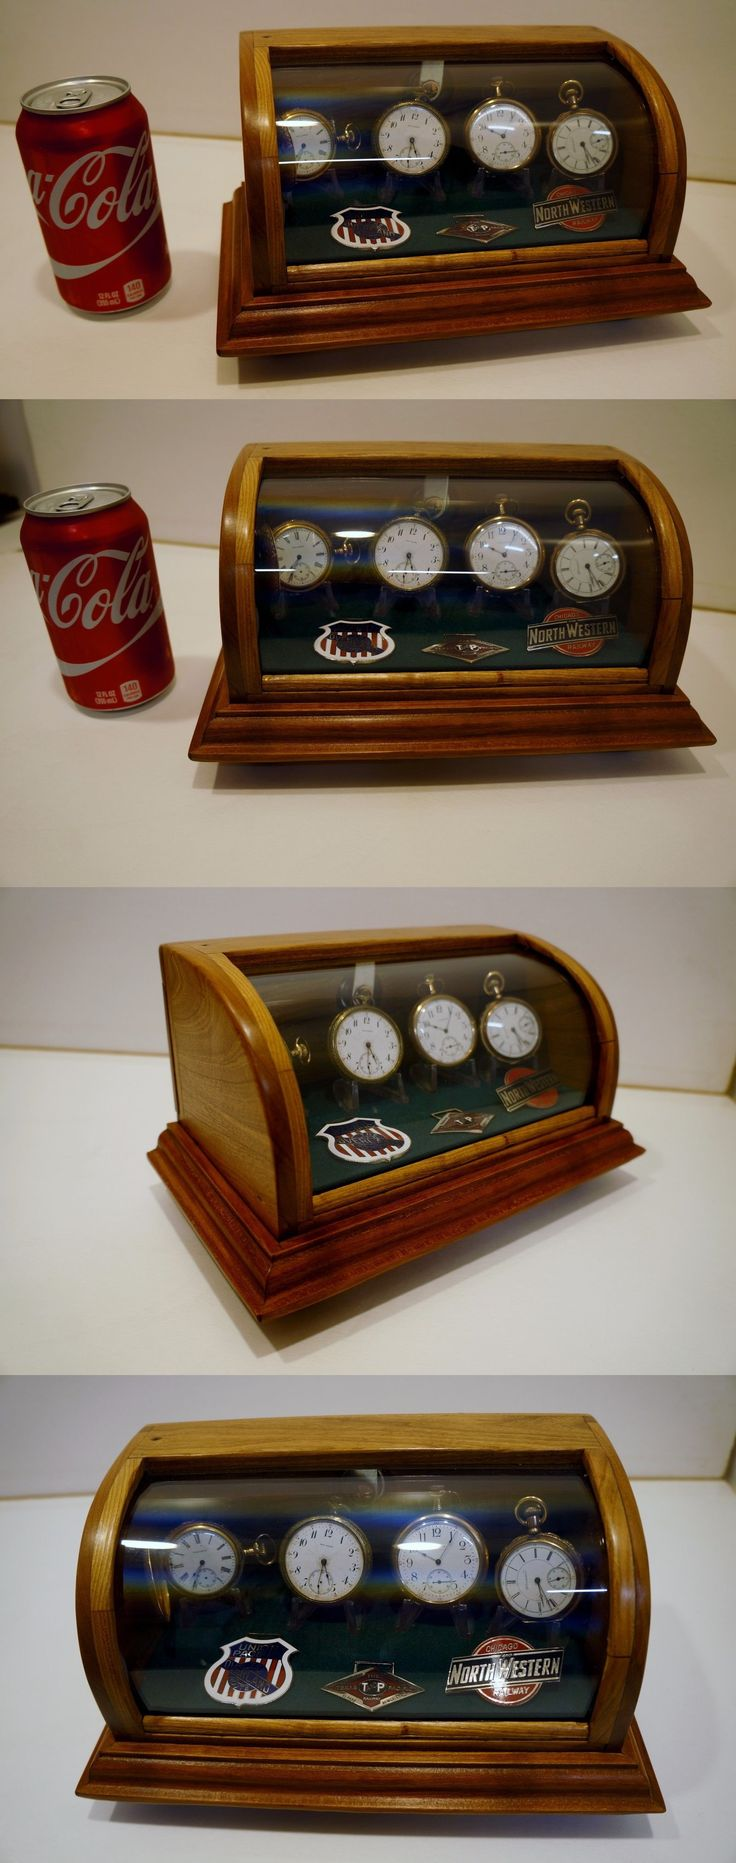 Antique 3940: Curved Glass Pocket Watch Display Case Solid Cherry...Very Small Displays 4 + -> BUY IT NOW ONLY: $150.0 on eBay!